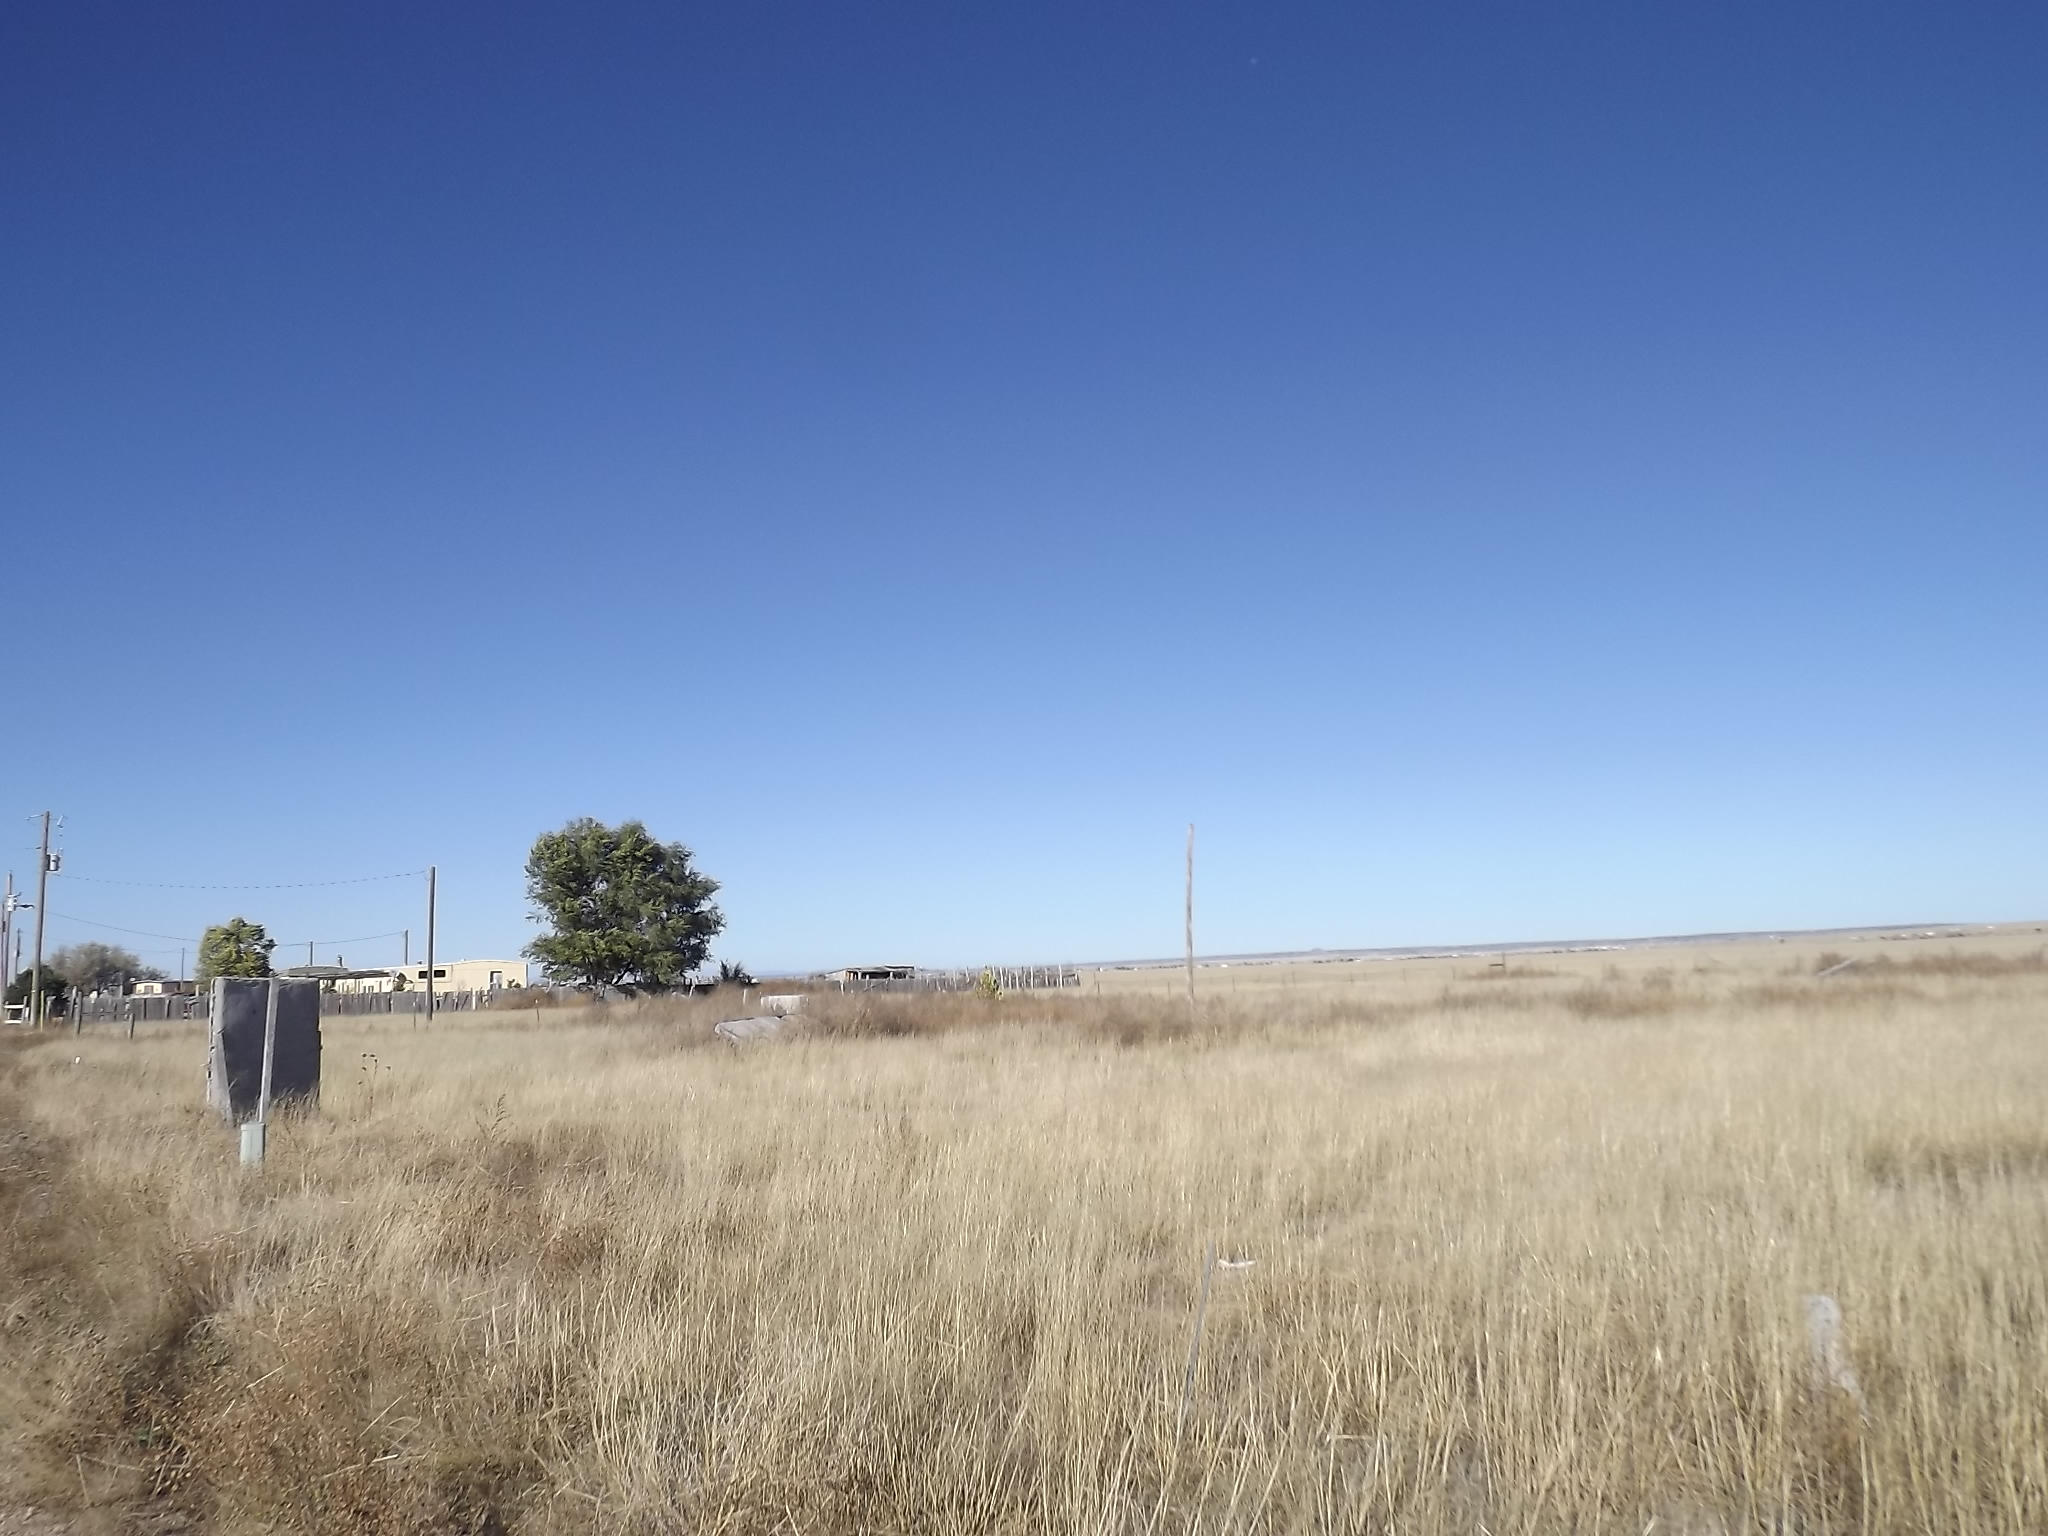 Kentucky Court, Moriarty, NM 87035 - Moriarty, NM real estate listing